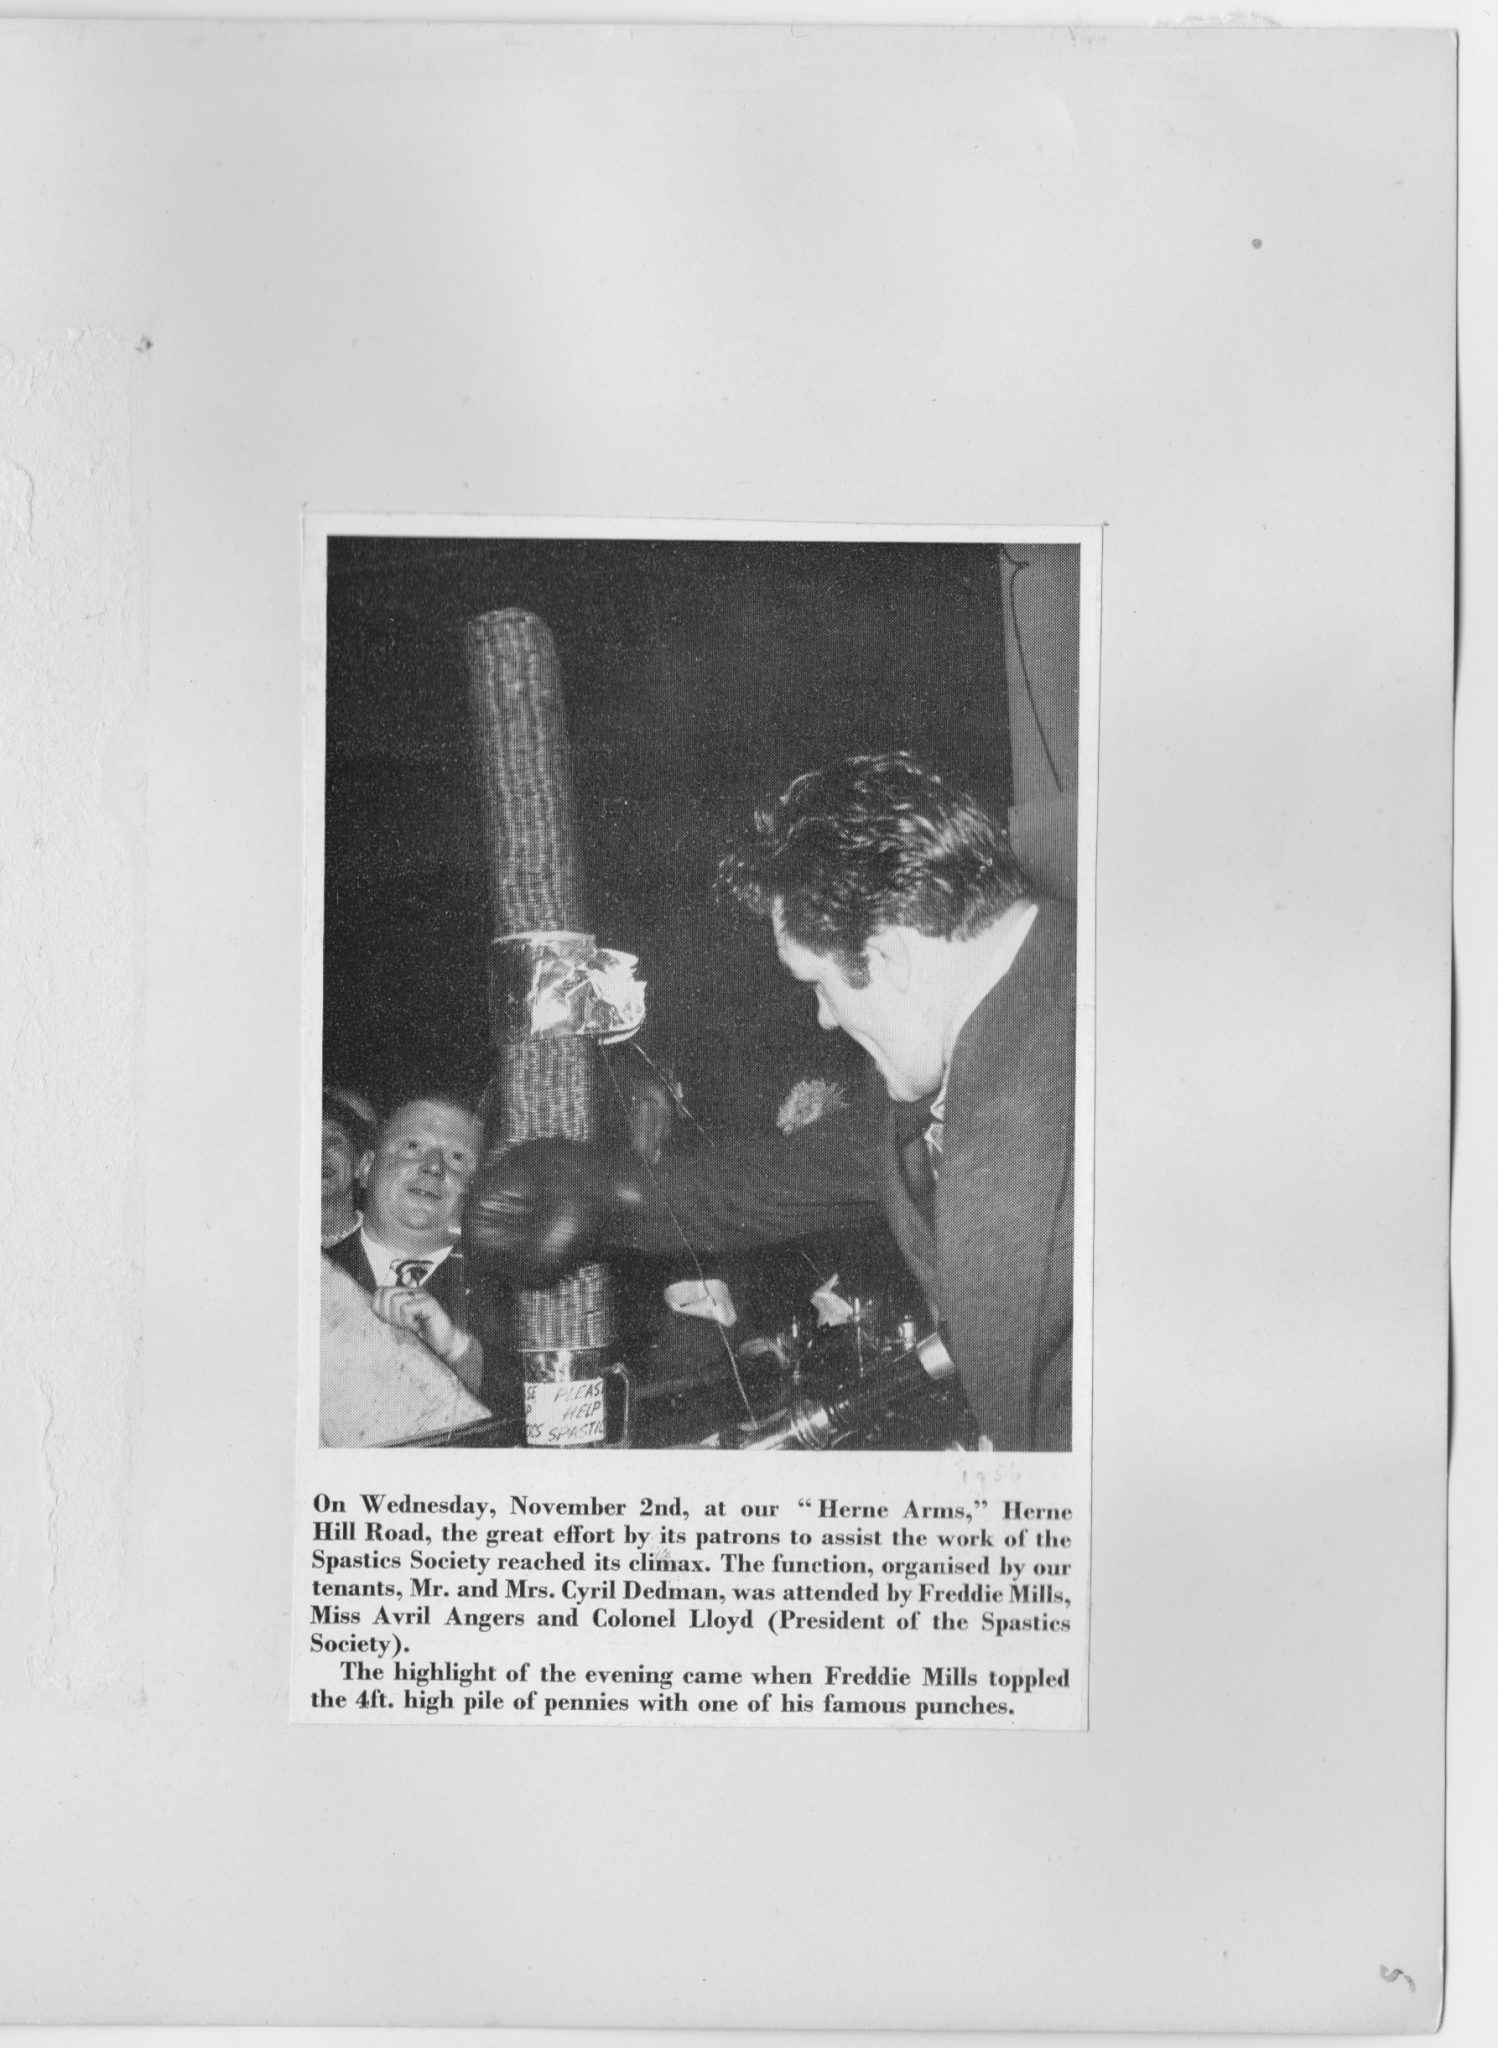 Boxer Freddie Mills knocks over a pile of pennies at the Herne Arms circa 1956